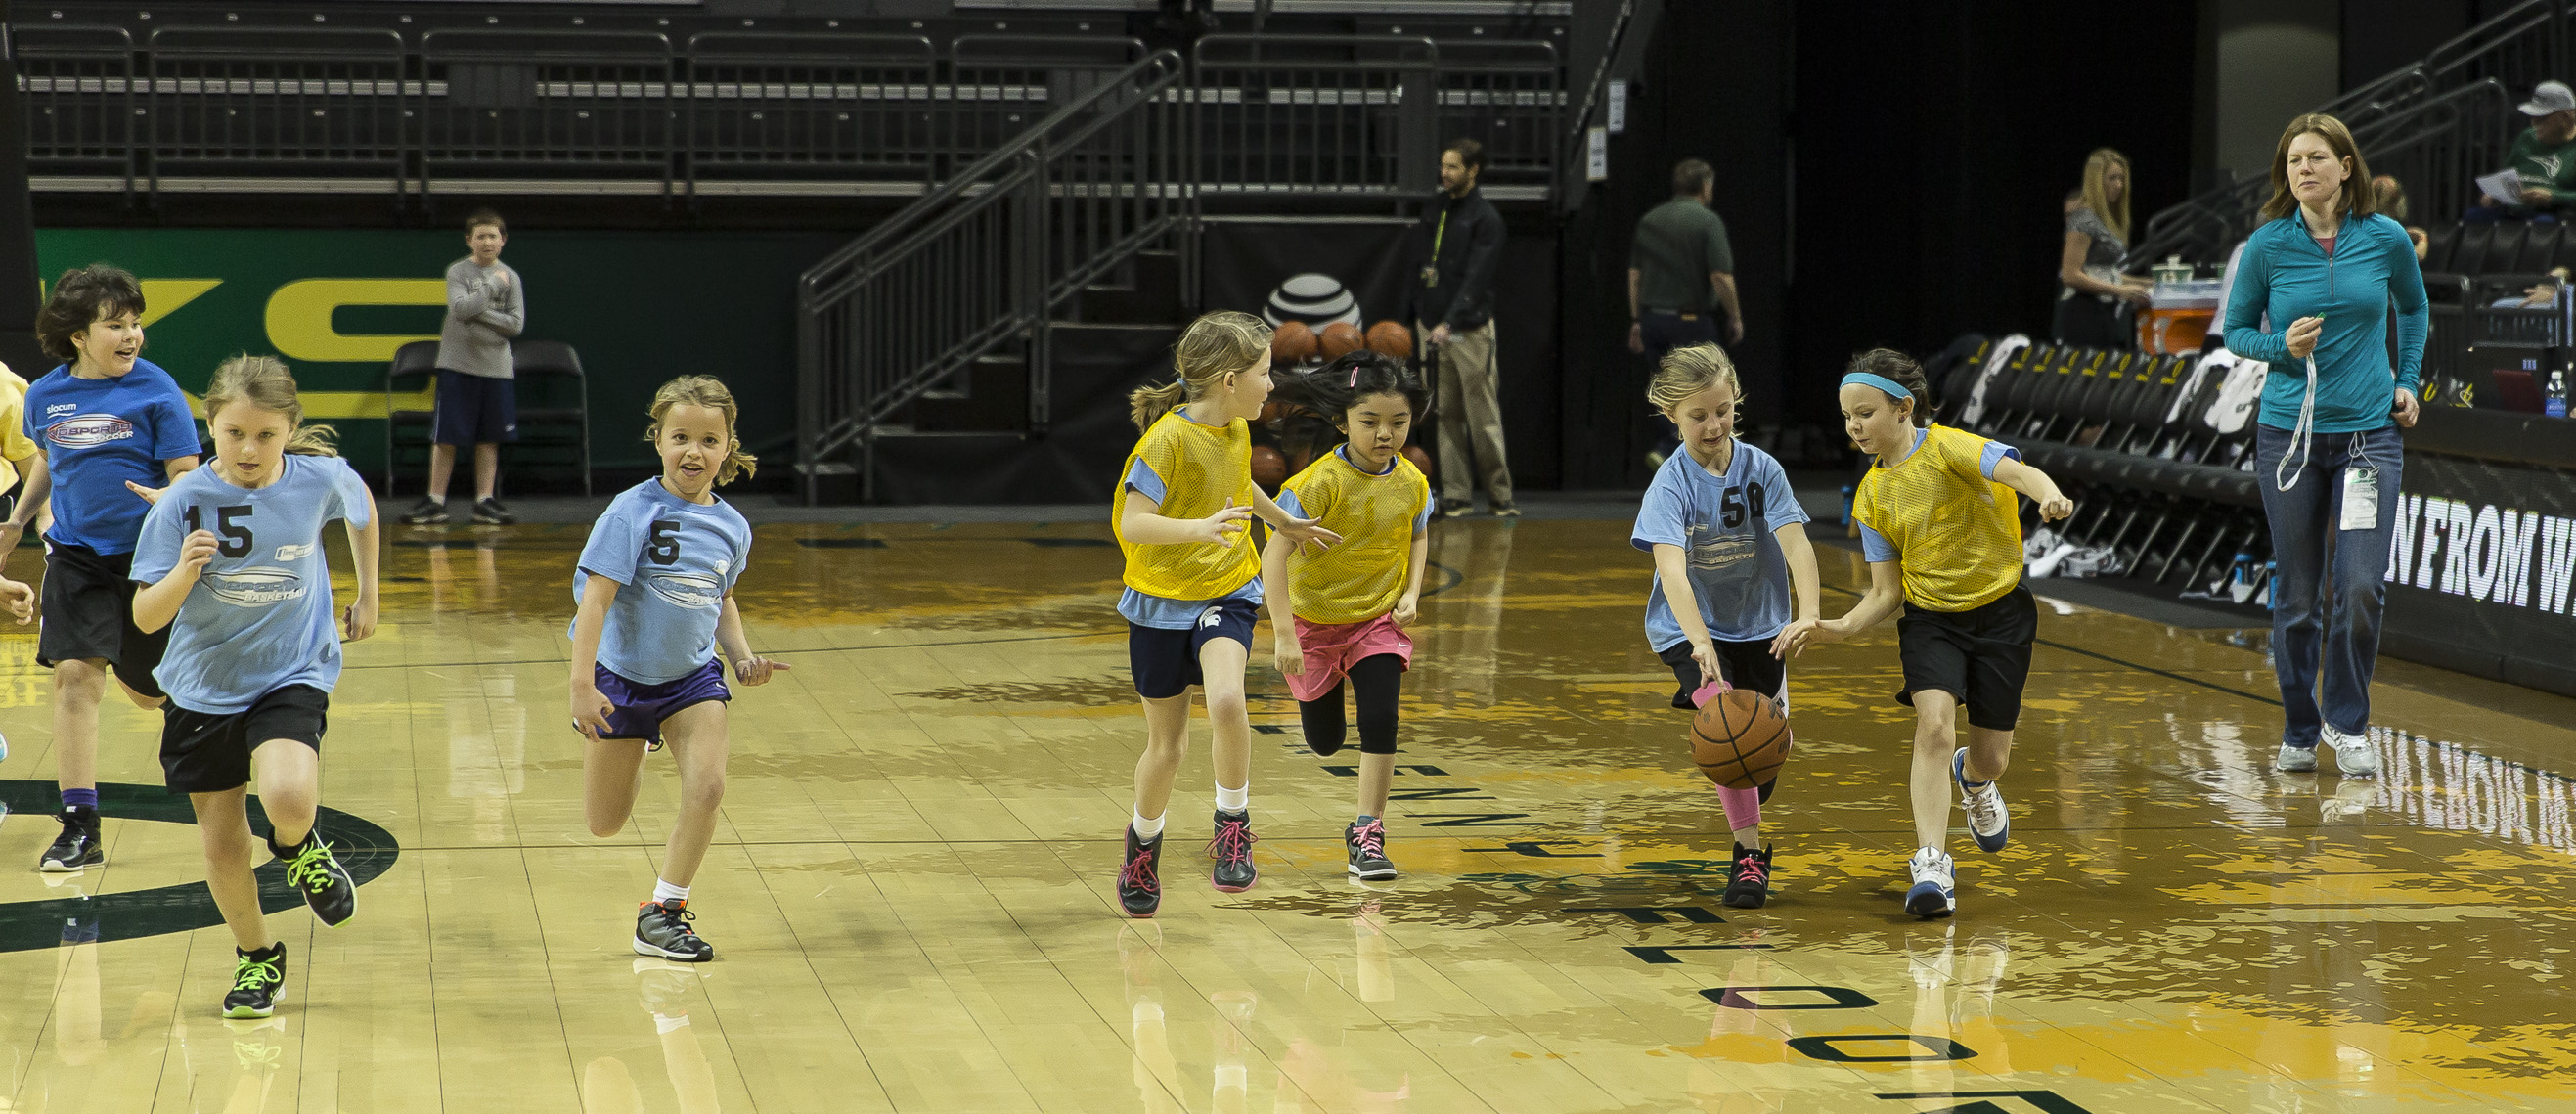 Halftime activities showing us the stars for the future